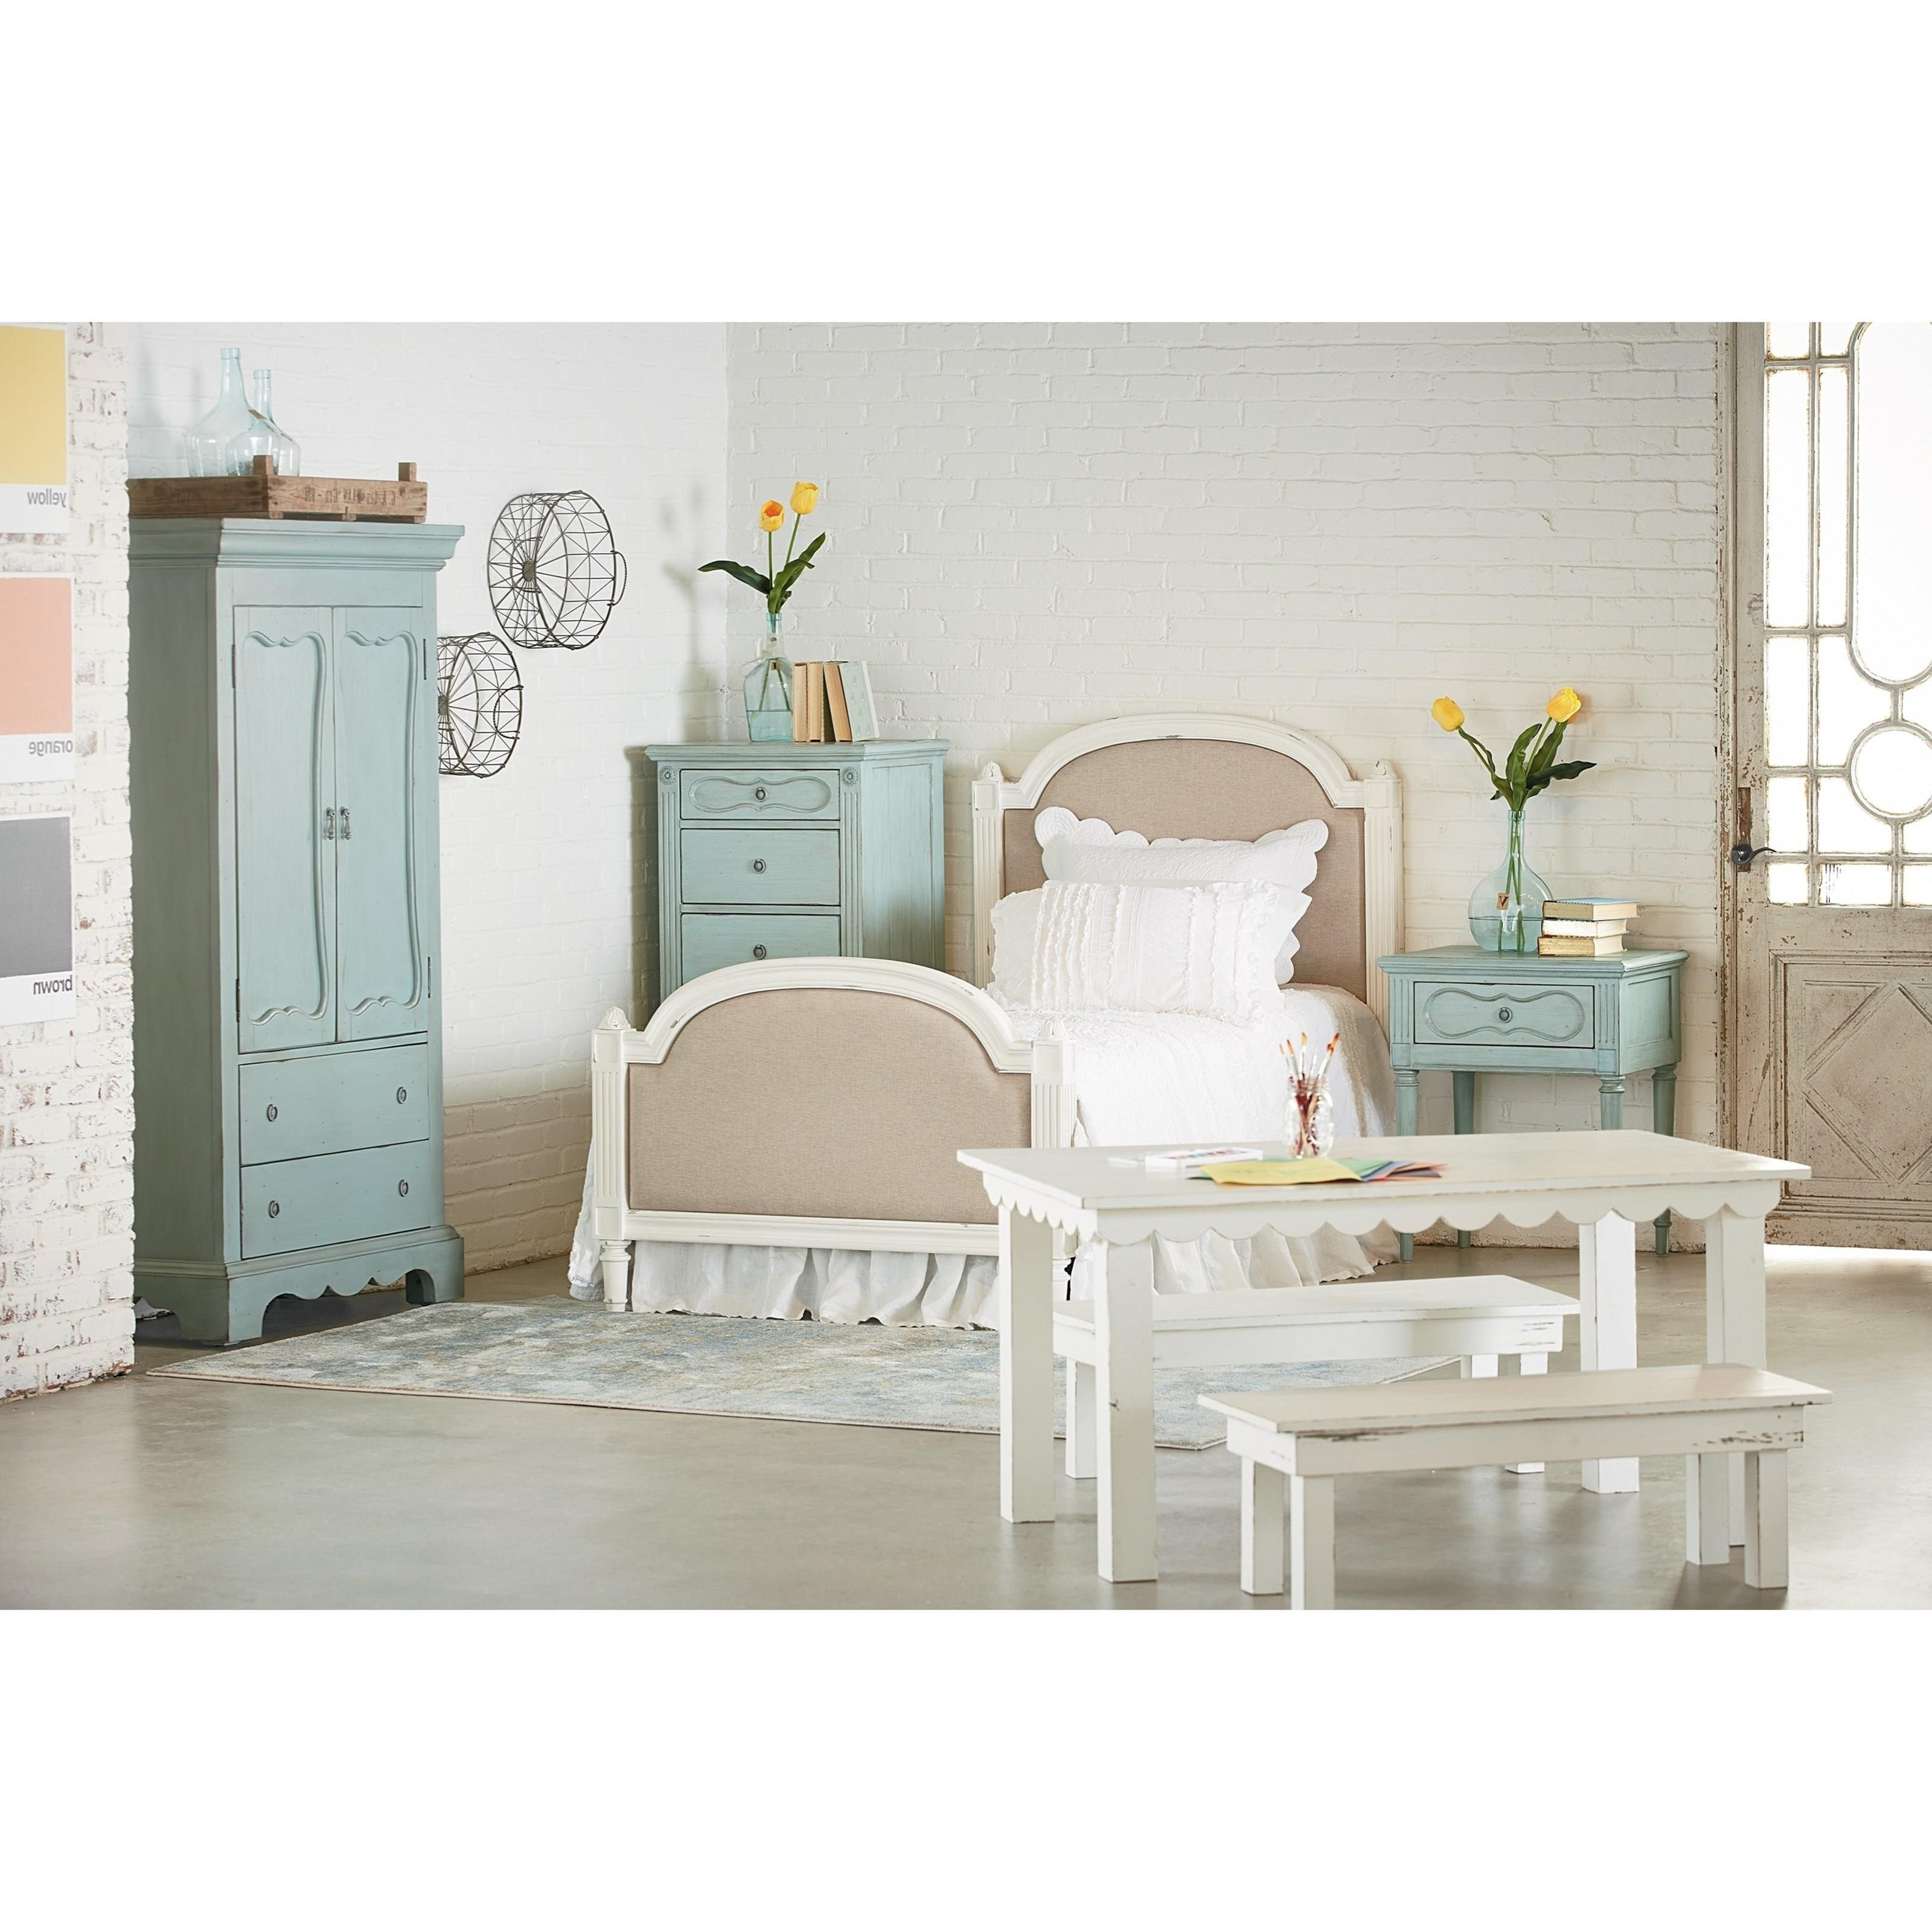 Magnolia Home Taper Turned Jo's White Gathering Tables Pertaining To Best And Newest Magnolia Homejoanna Gaines Is Now At Zak's (View 11 of 25)